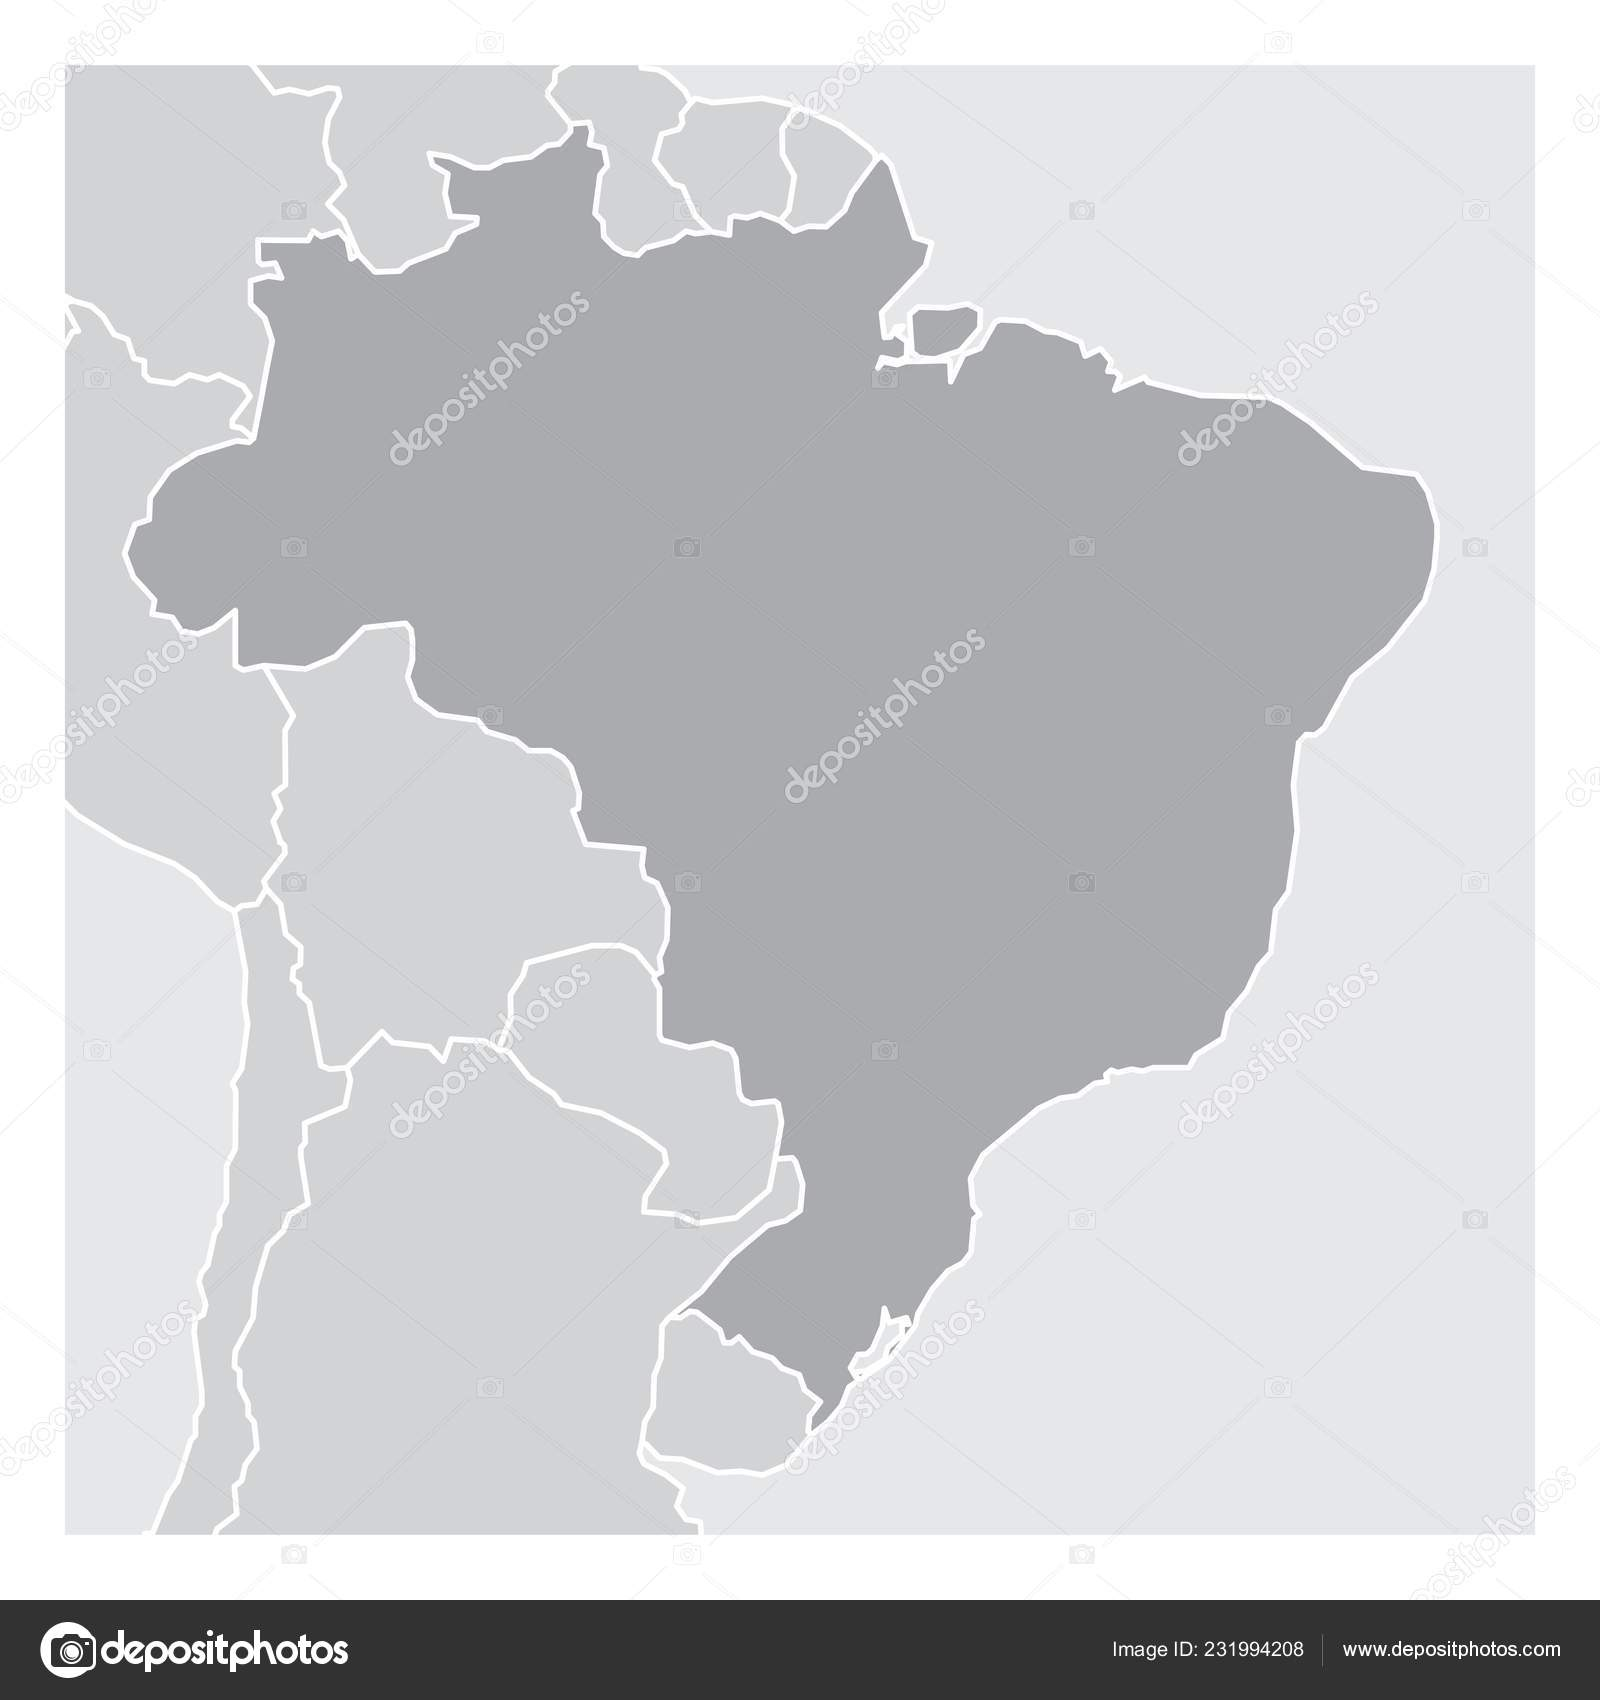 Picture of: Simplified Map Brazil South America Stock Vector C Luisrftc 231994208